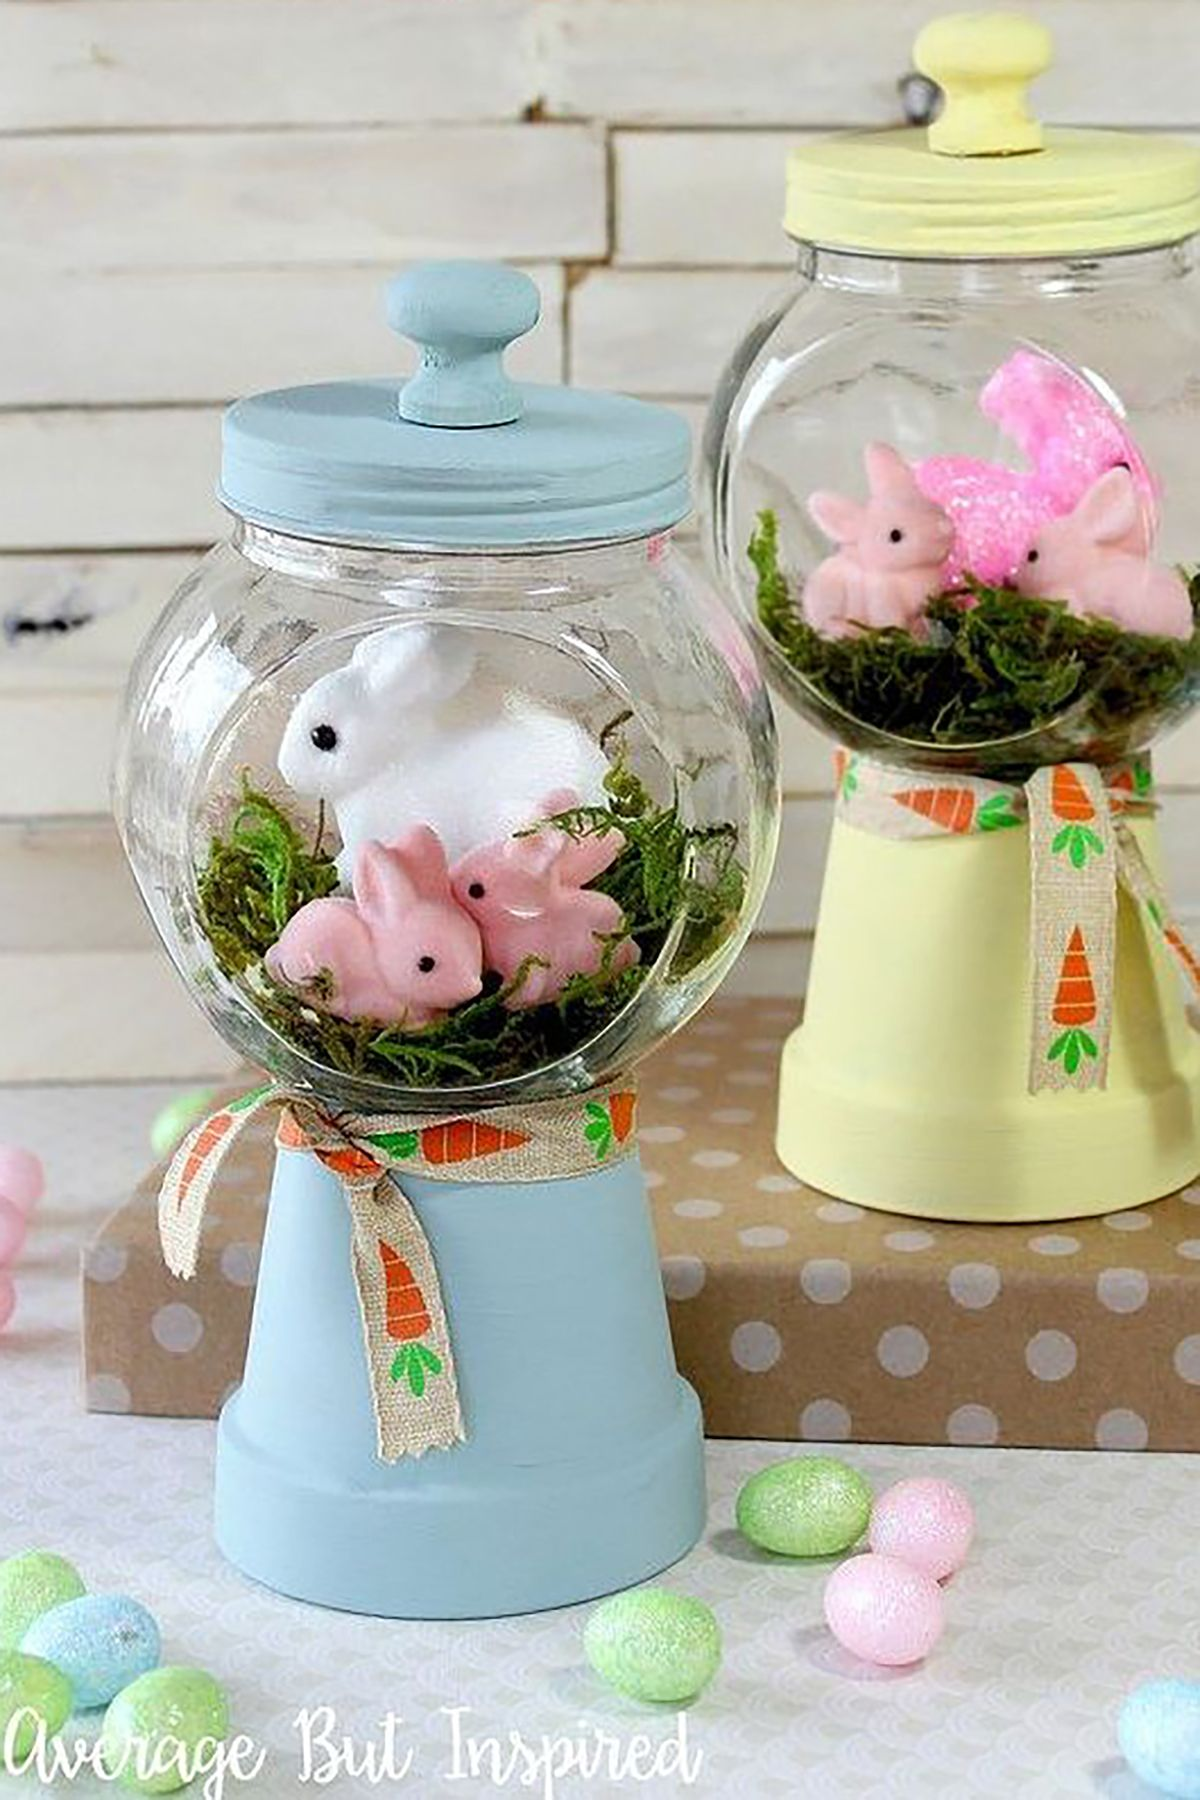 46 easy easter crafts ideas for easter diy decorations gifts 46 easy easter crafts ideas for easter diy decorations gifts country living negle Gallery